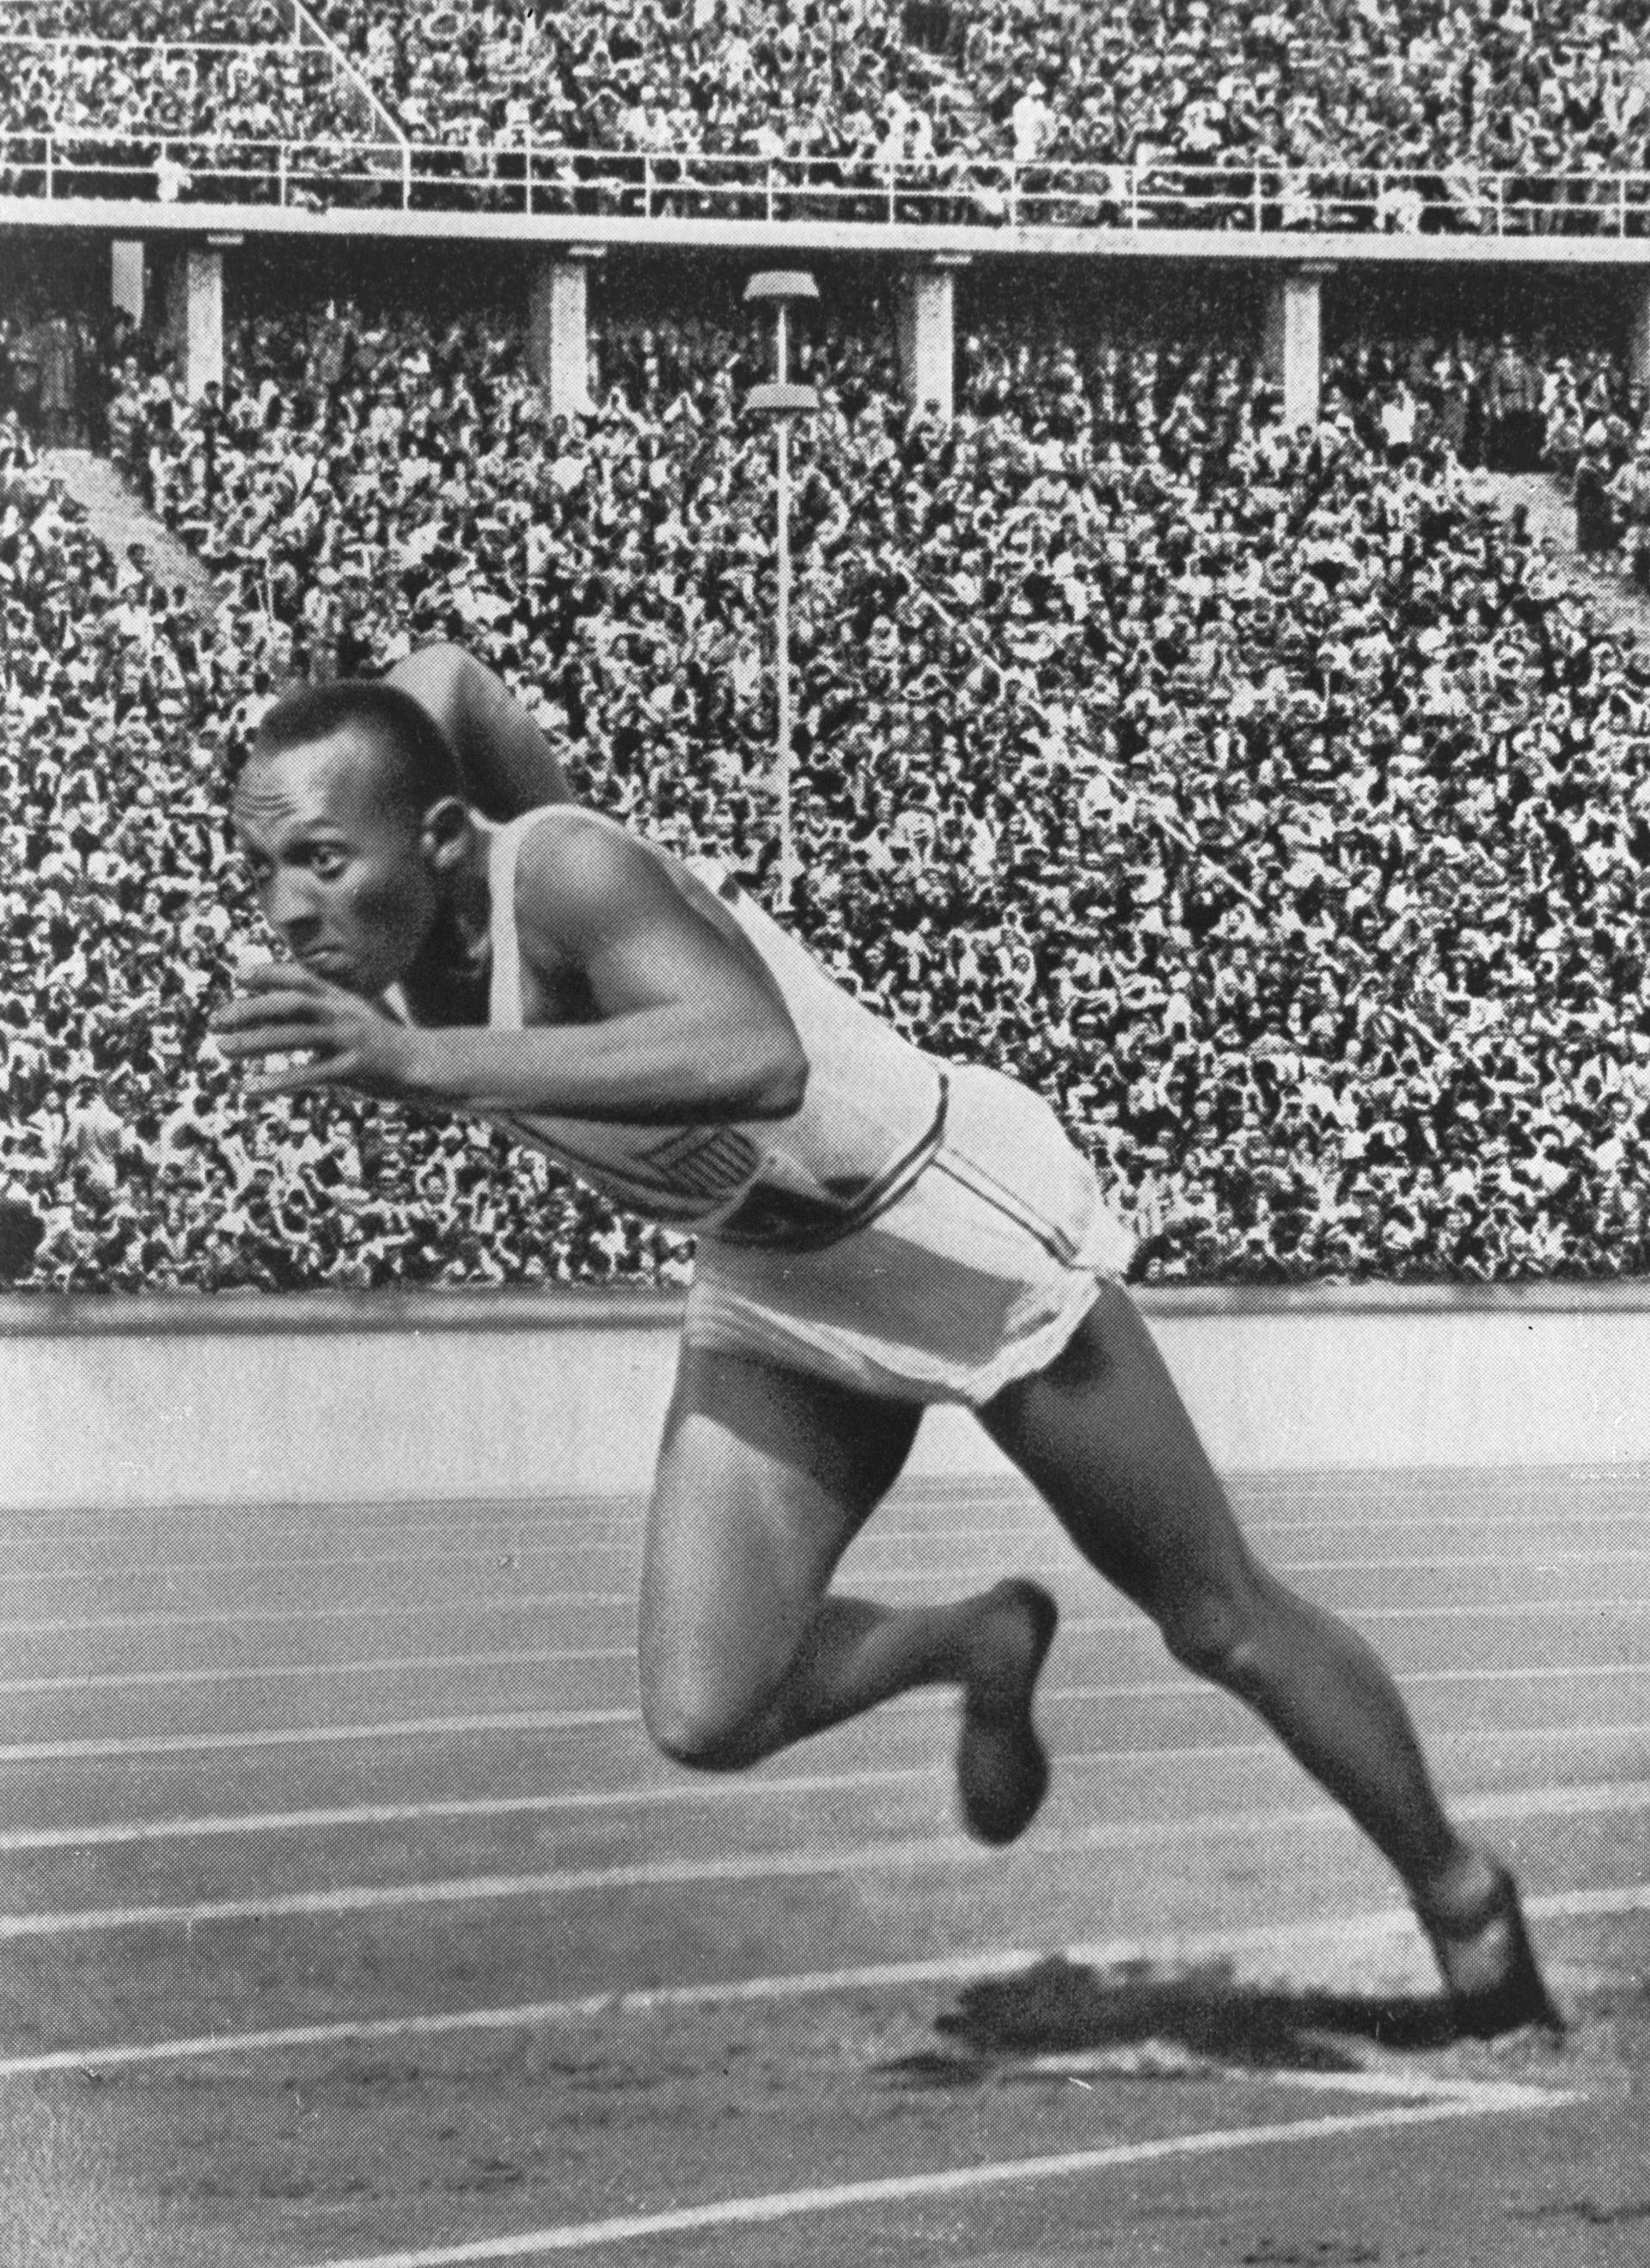 Photo of Jesse Owens: American track and field athlete